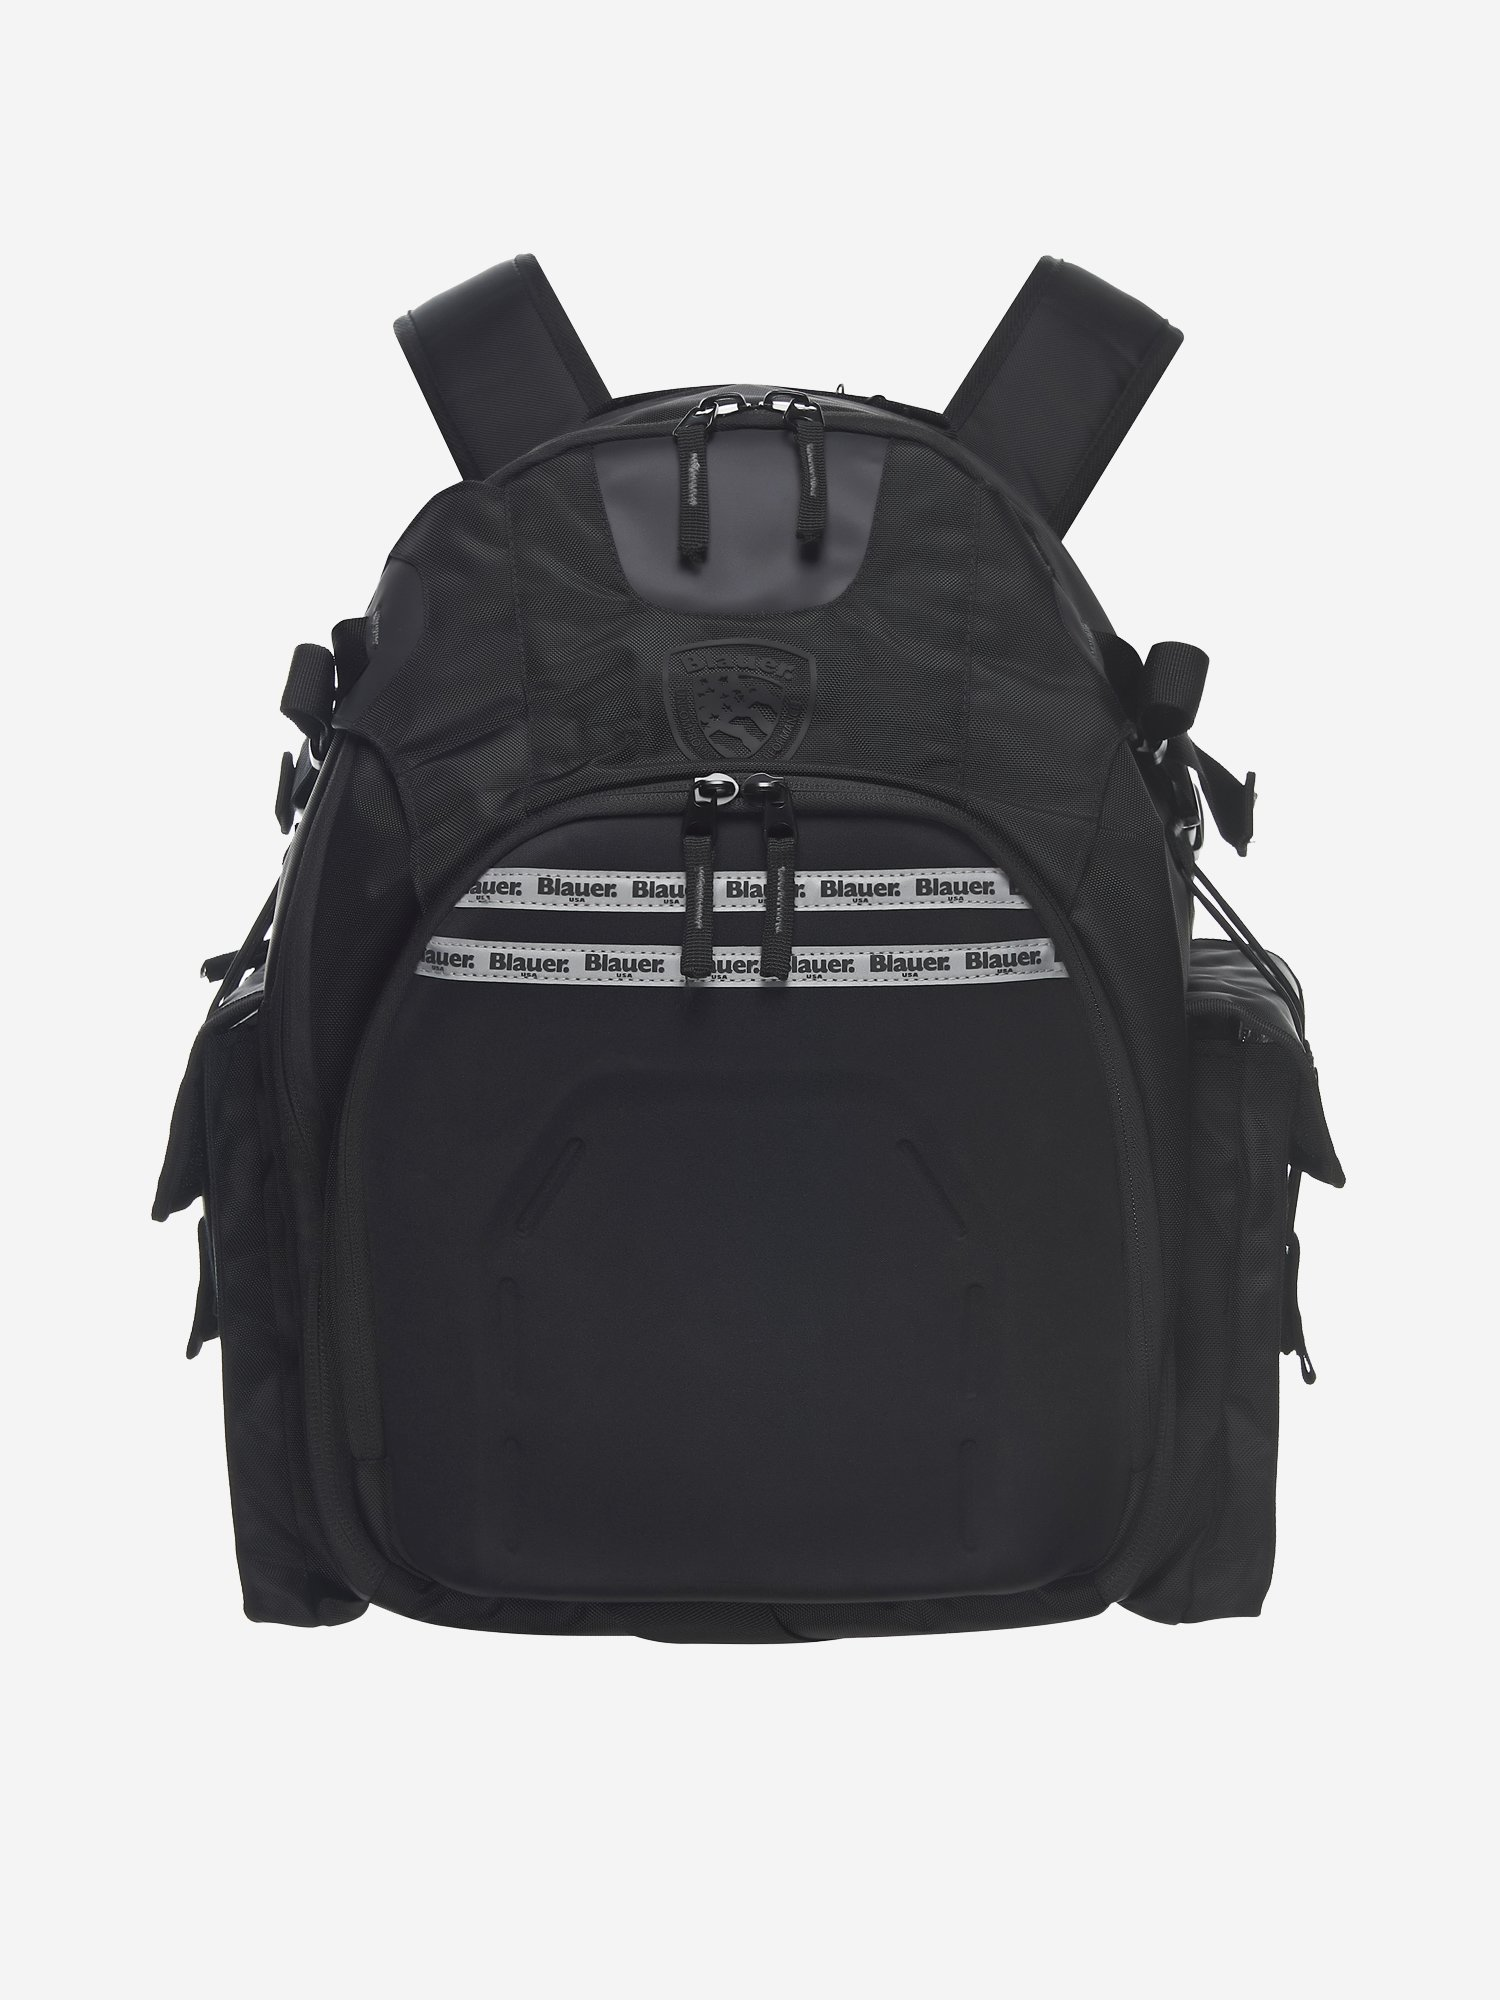 POLICA ACT BACKPACK - Blauer